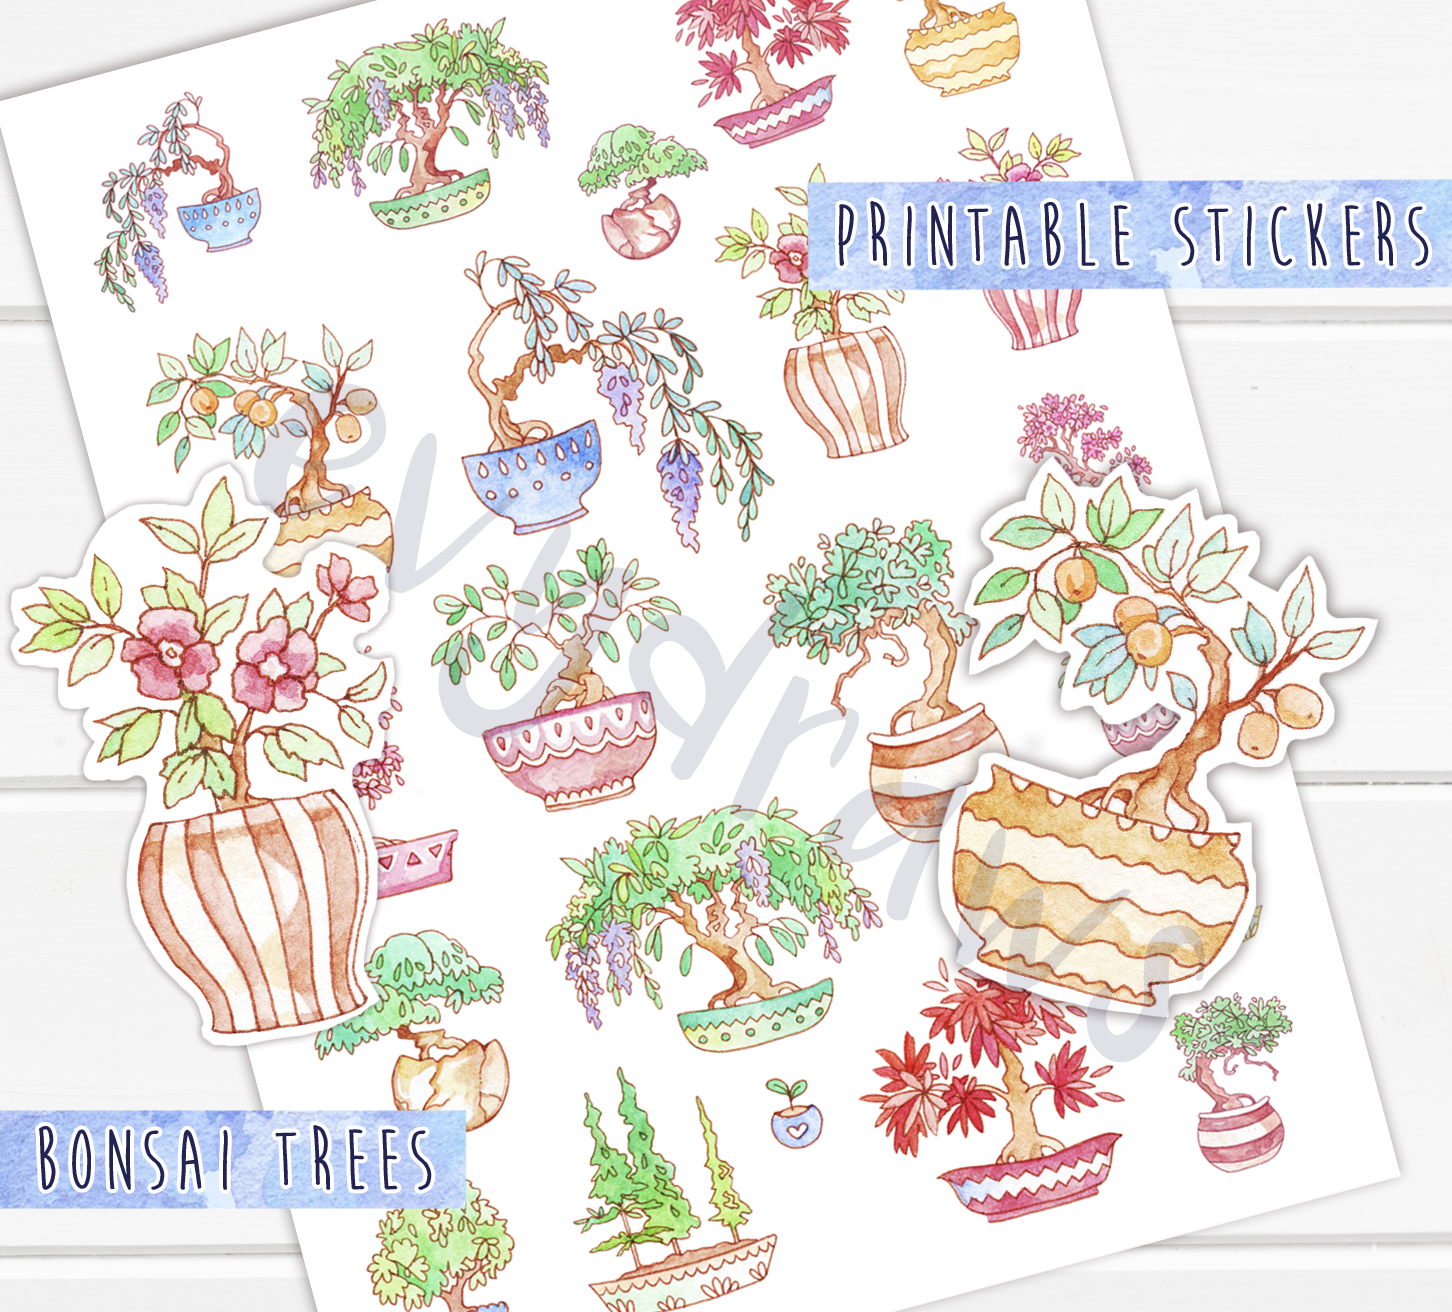 bonsai-stickers-printable-scrapbook-illustrations.PNG